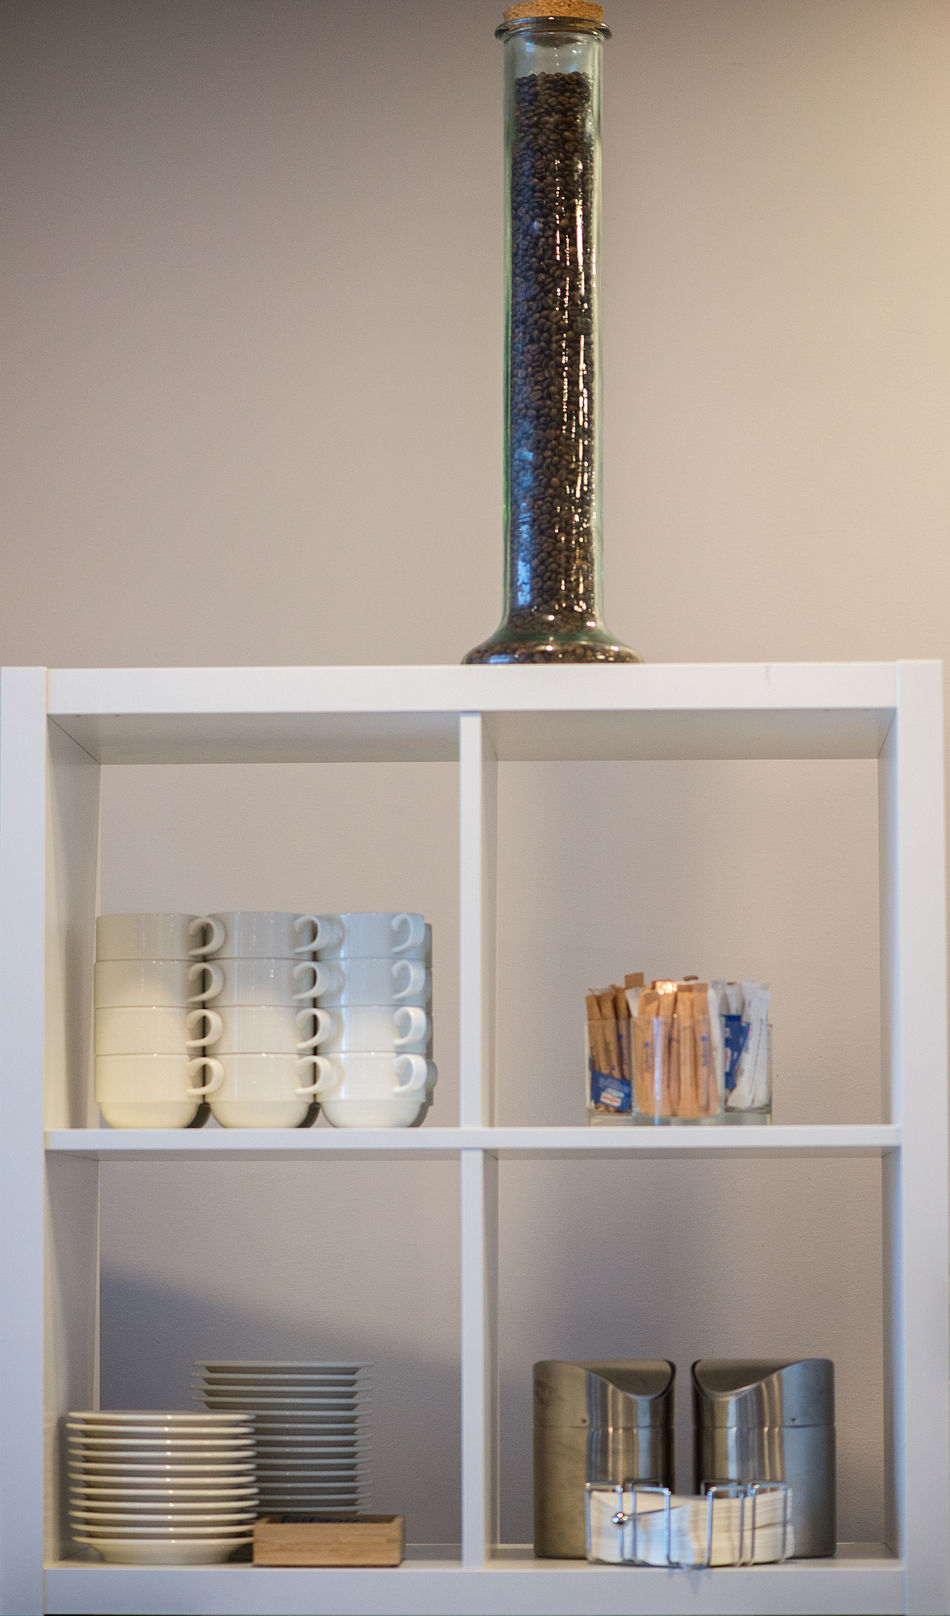 white shelf with kitchen utensils Business Coffy Cups Details Dishes Elements EyeEmNewHere Food And Drink Home Interior Home Showcase Interior Hotel Breakfast Indoors  Interior Interior Design Luxury Minimalism Minimalist Architecture No People Shelf Shelves Tidy Room